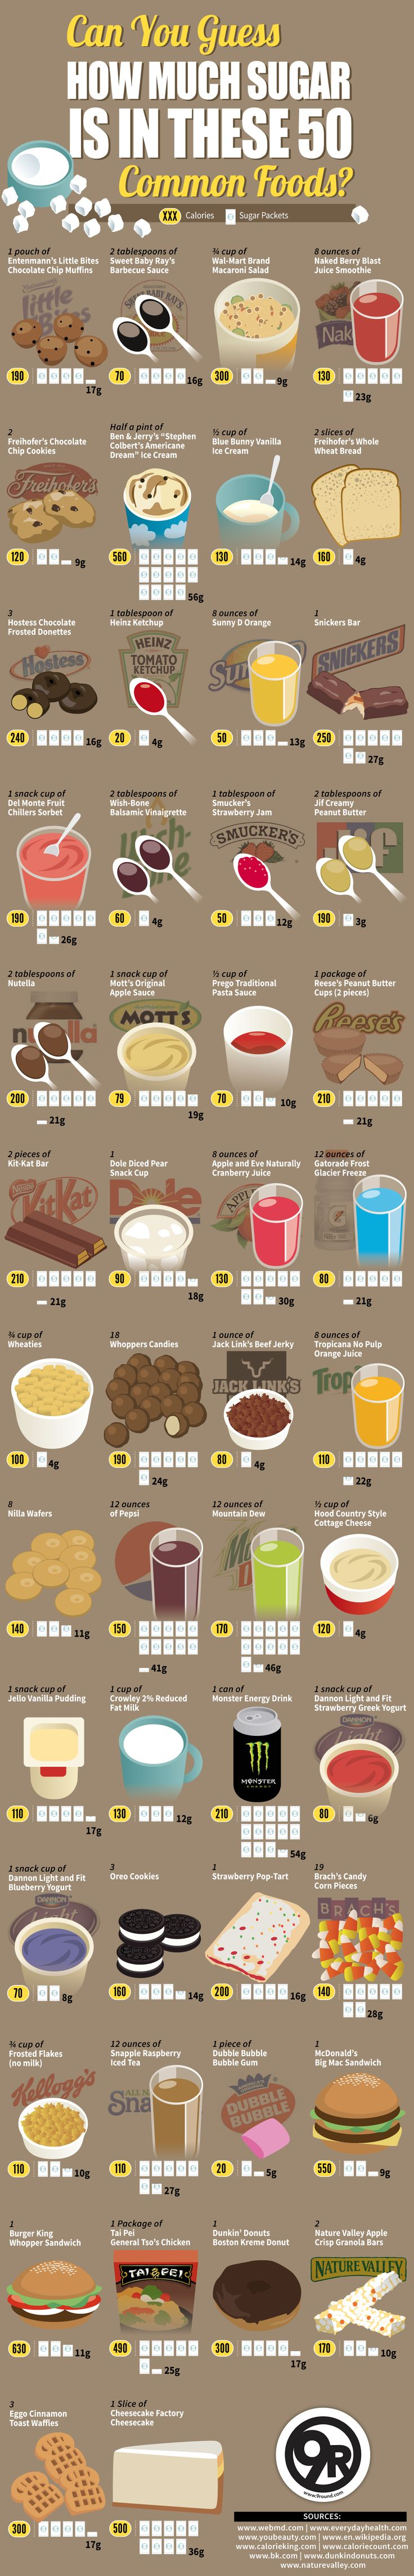 How Much Sugar Is Actually In Your Food, From Pasta Sauce To Salad Dressing | Huffington Post